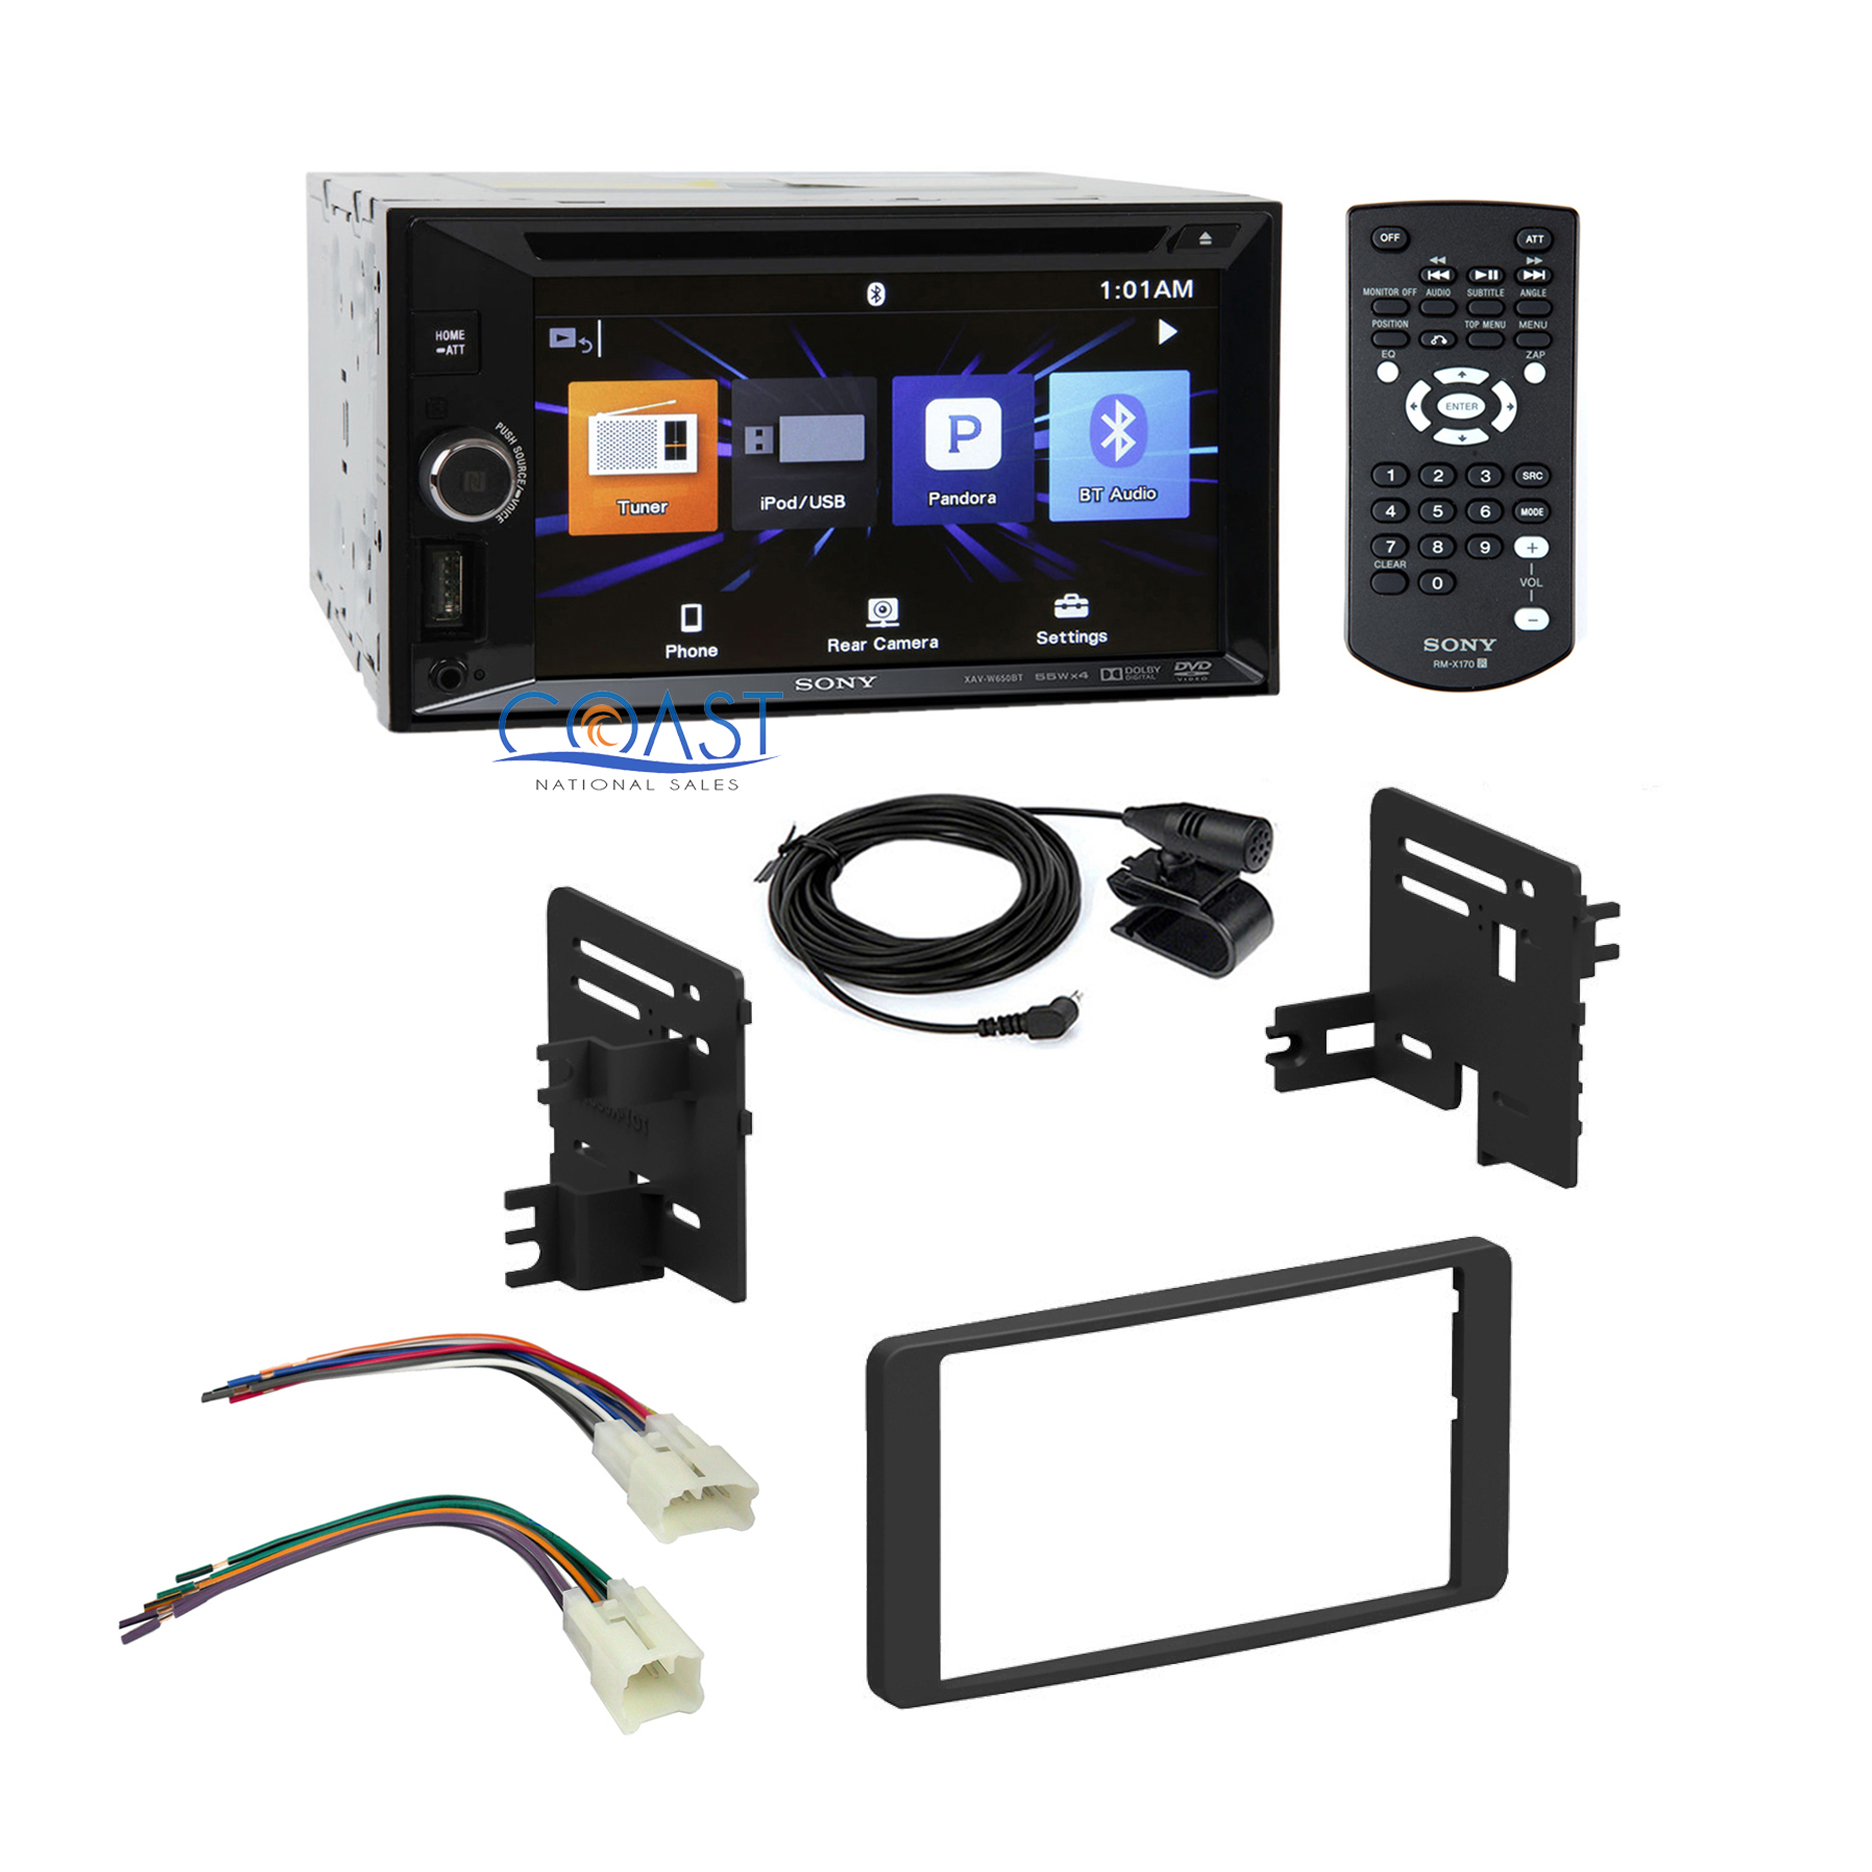 Tundra Radio Wiring Harness : Sony car radio stereo dash kit wire harness for